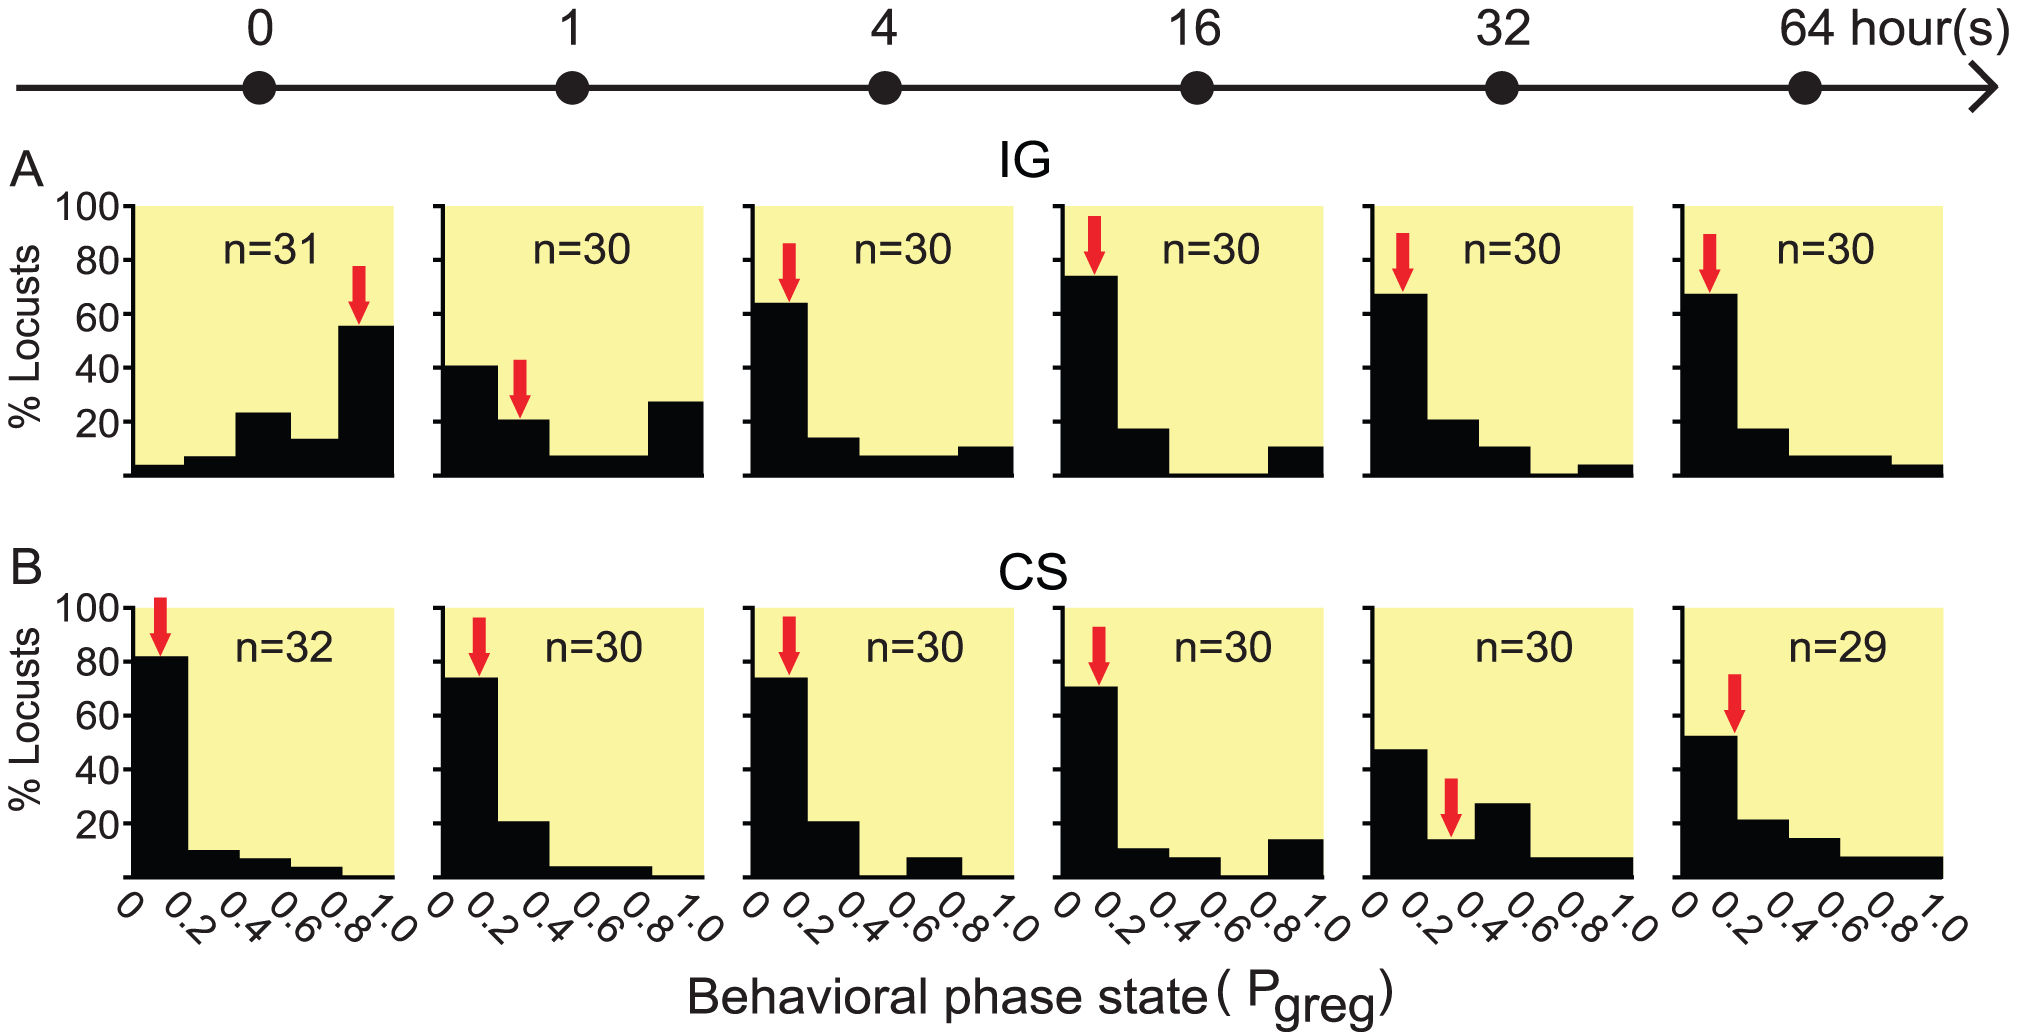 The time course of behavioral phase change in fourth-instar nymphs of <i>Locusta migratoria</i>.